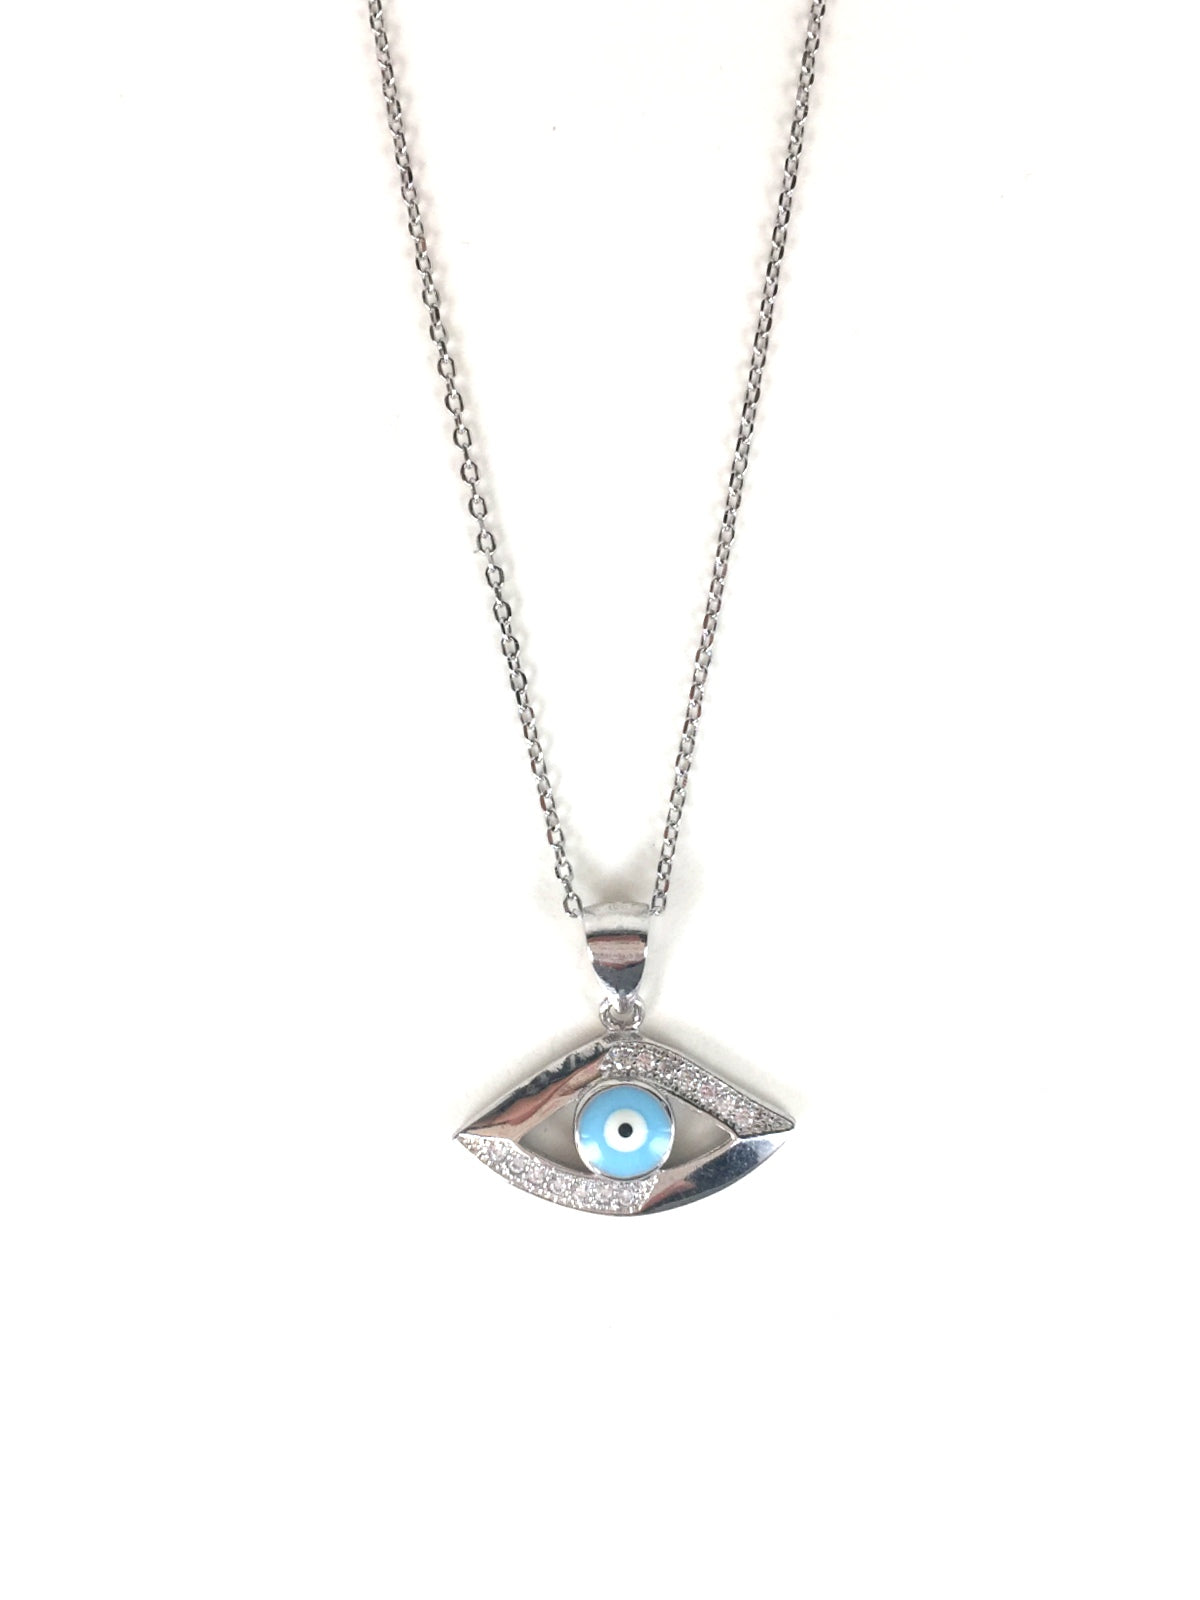 EVIL EYE 2 PAVE CZ STERLING SILVER NECKLACE